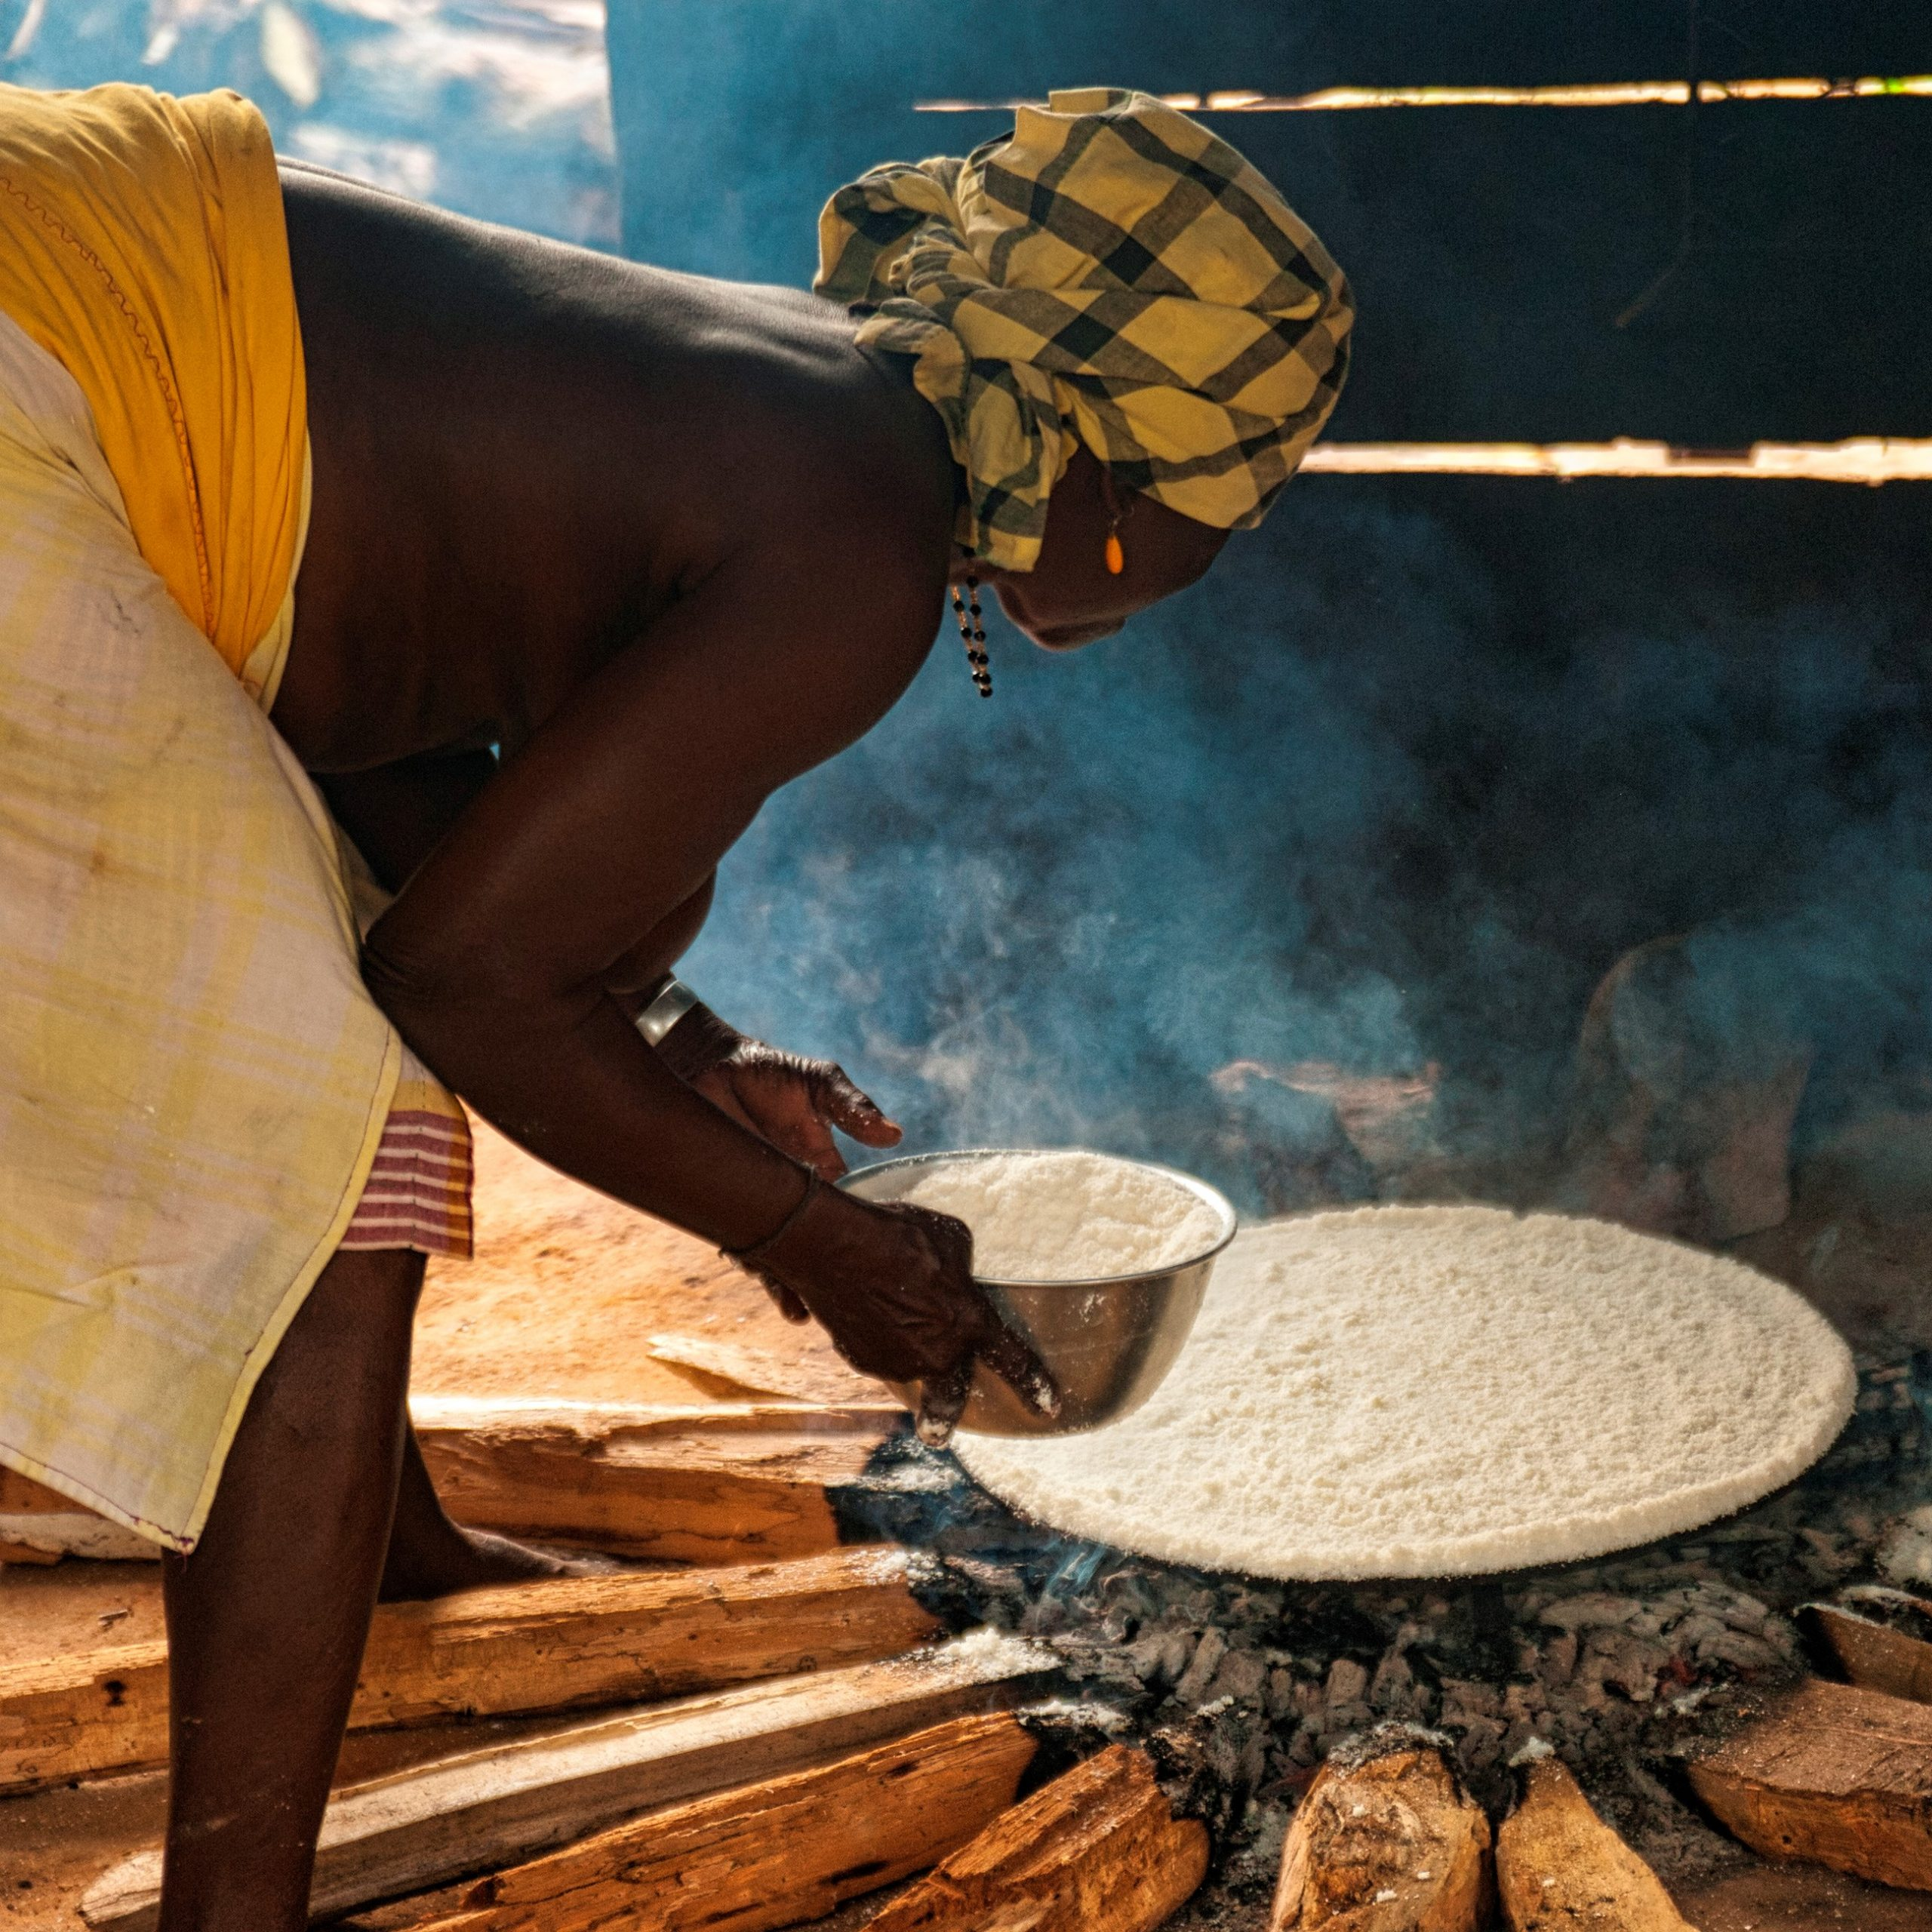 baking cassava bread